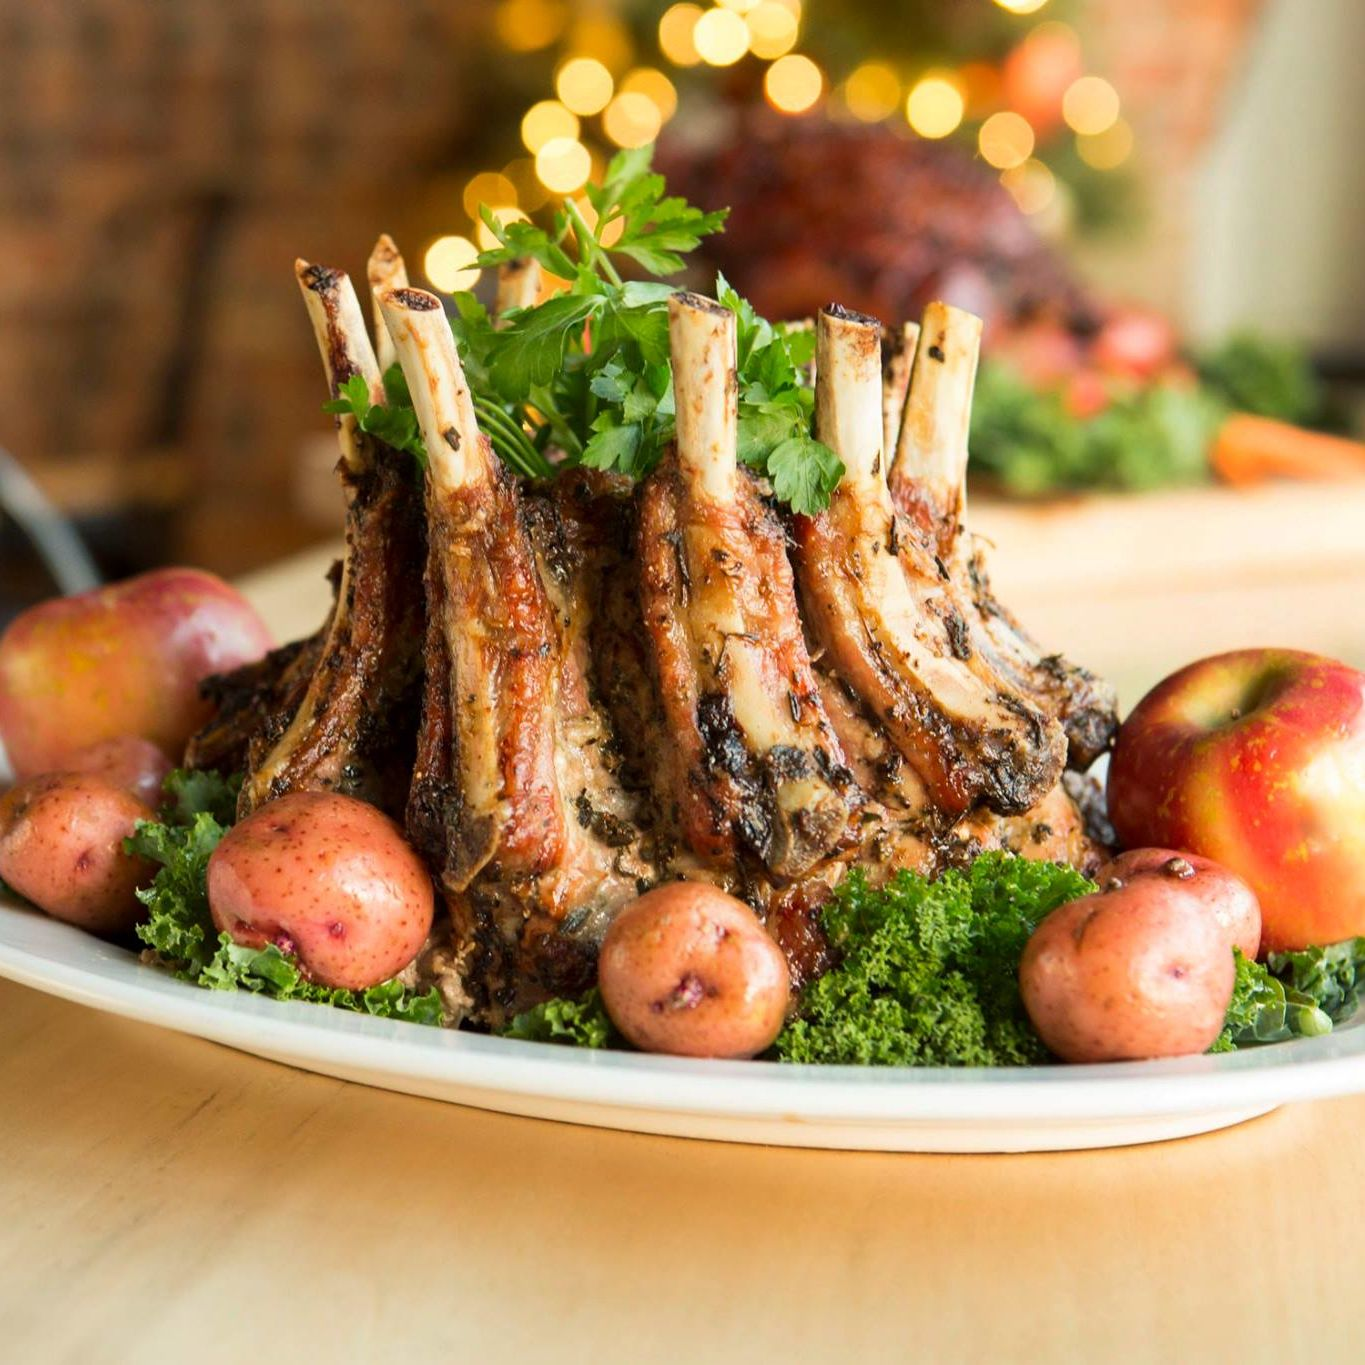 Rack of lamb i6i0yd